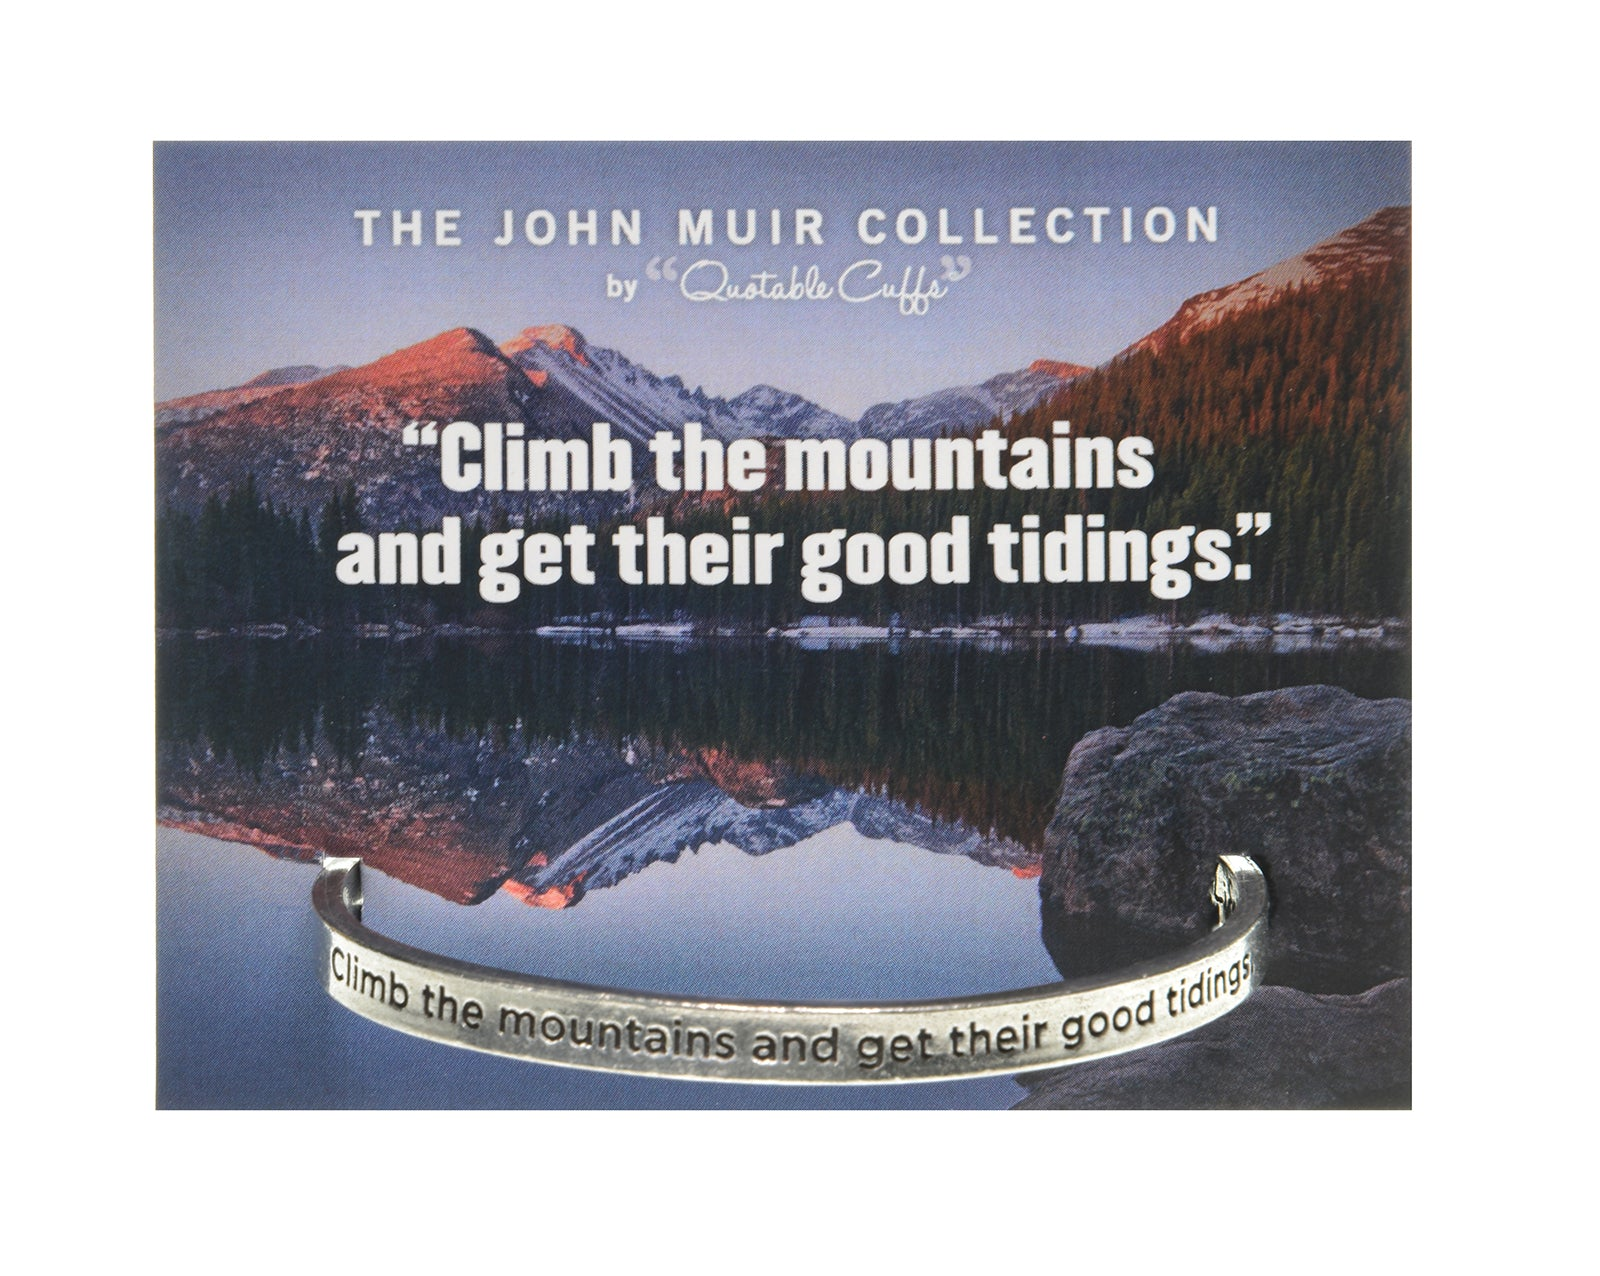 Climb the Mountaints and Get Their Good Tidings John Muir Quotable Cuff Bracelet - Whitney Howard Designs